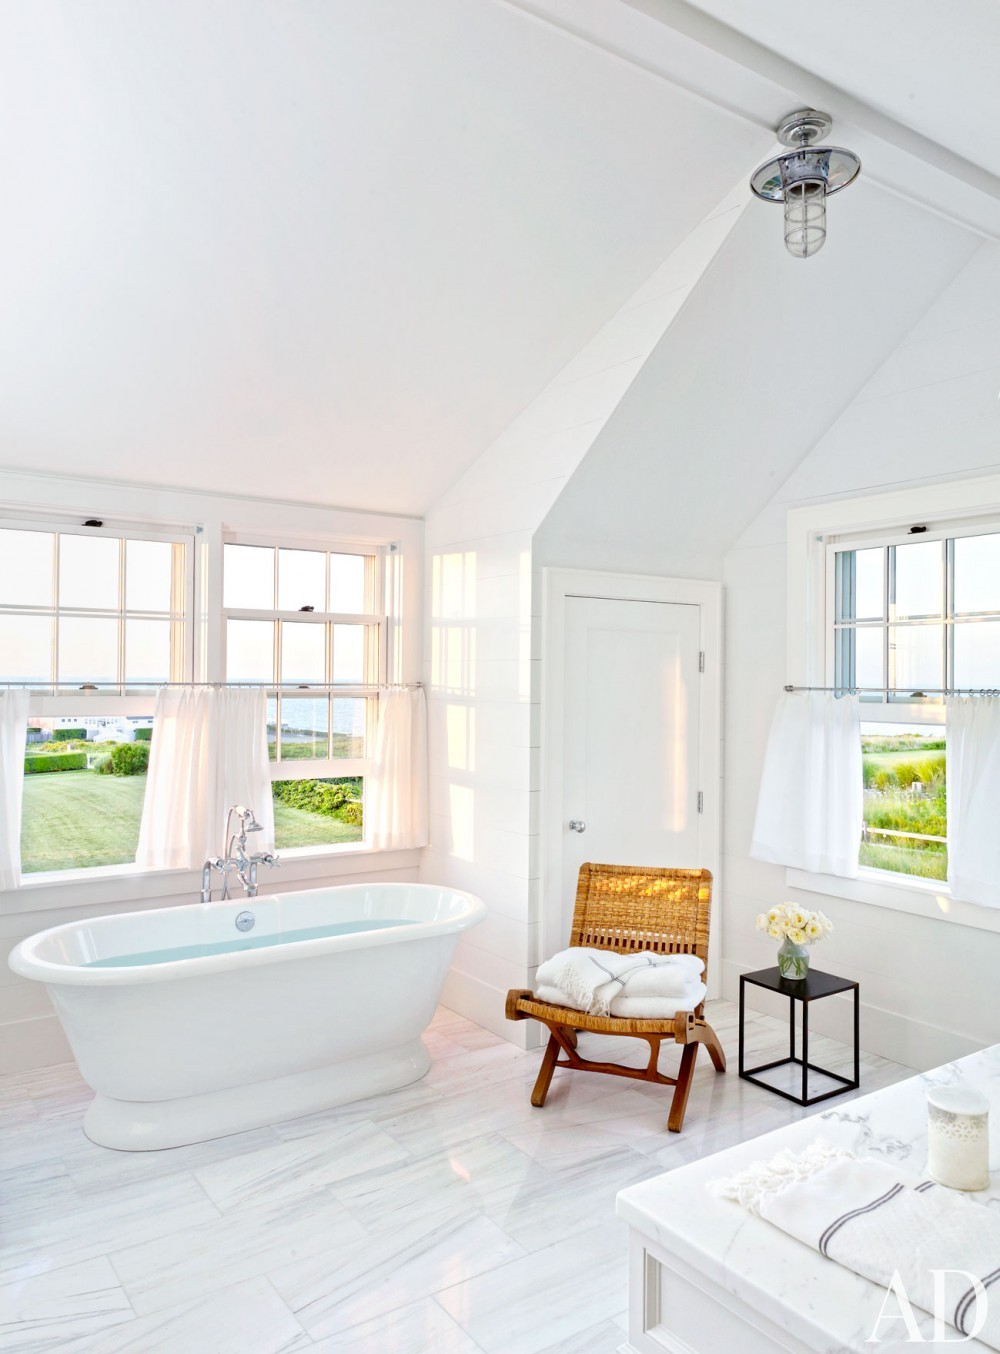 Beach Bathroom by Victoria Hagen and Botticelli & Pohl Architects in Nantucket, MA